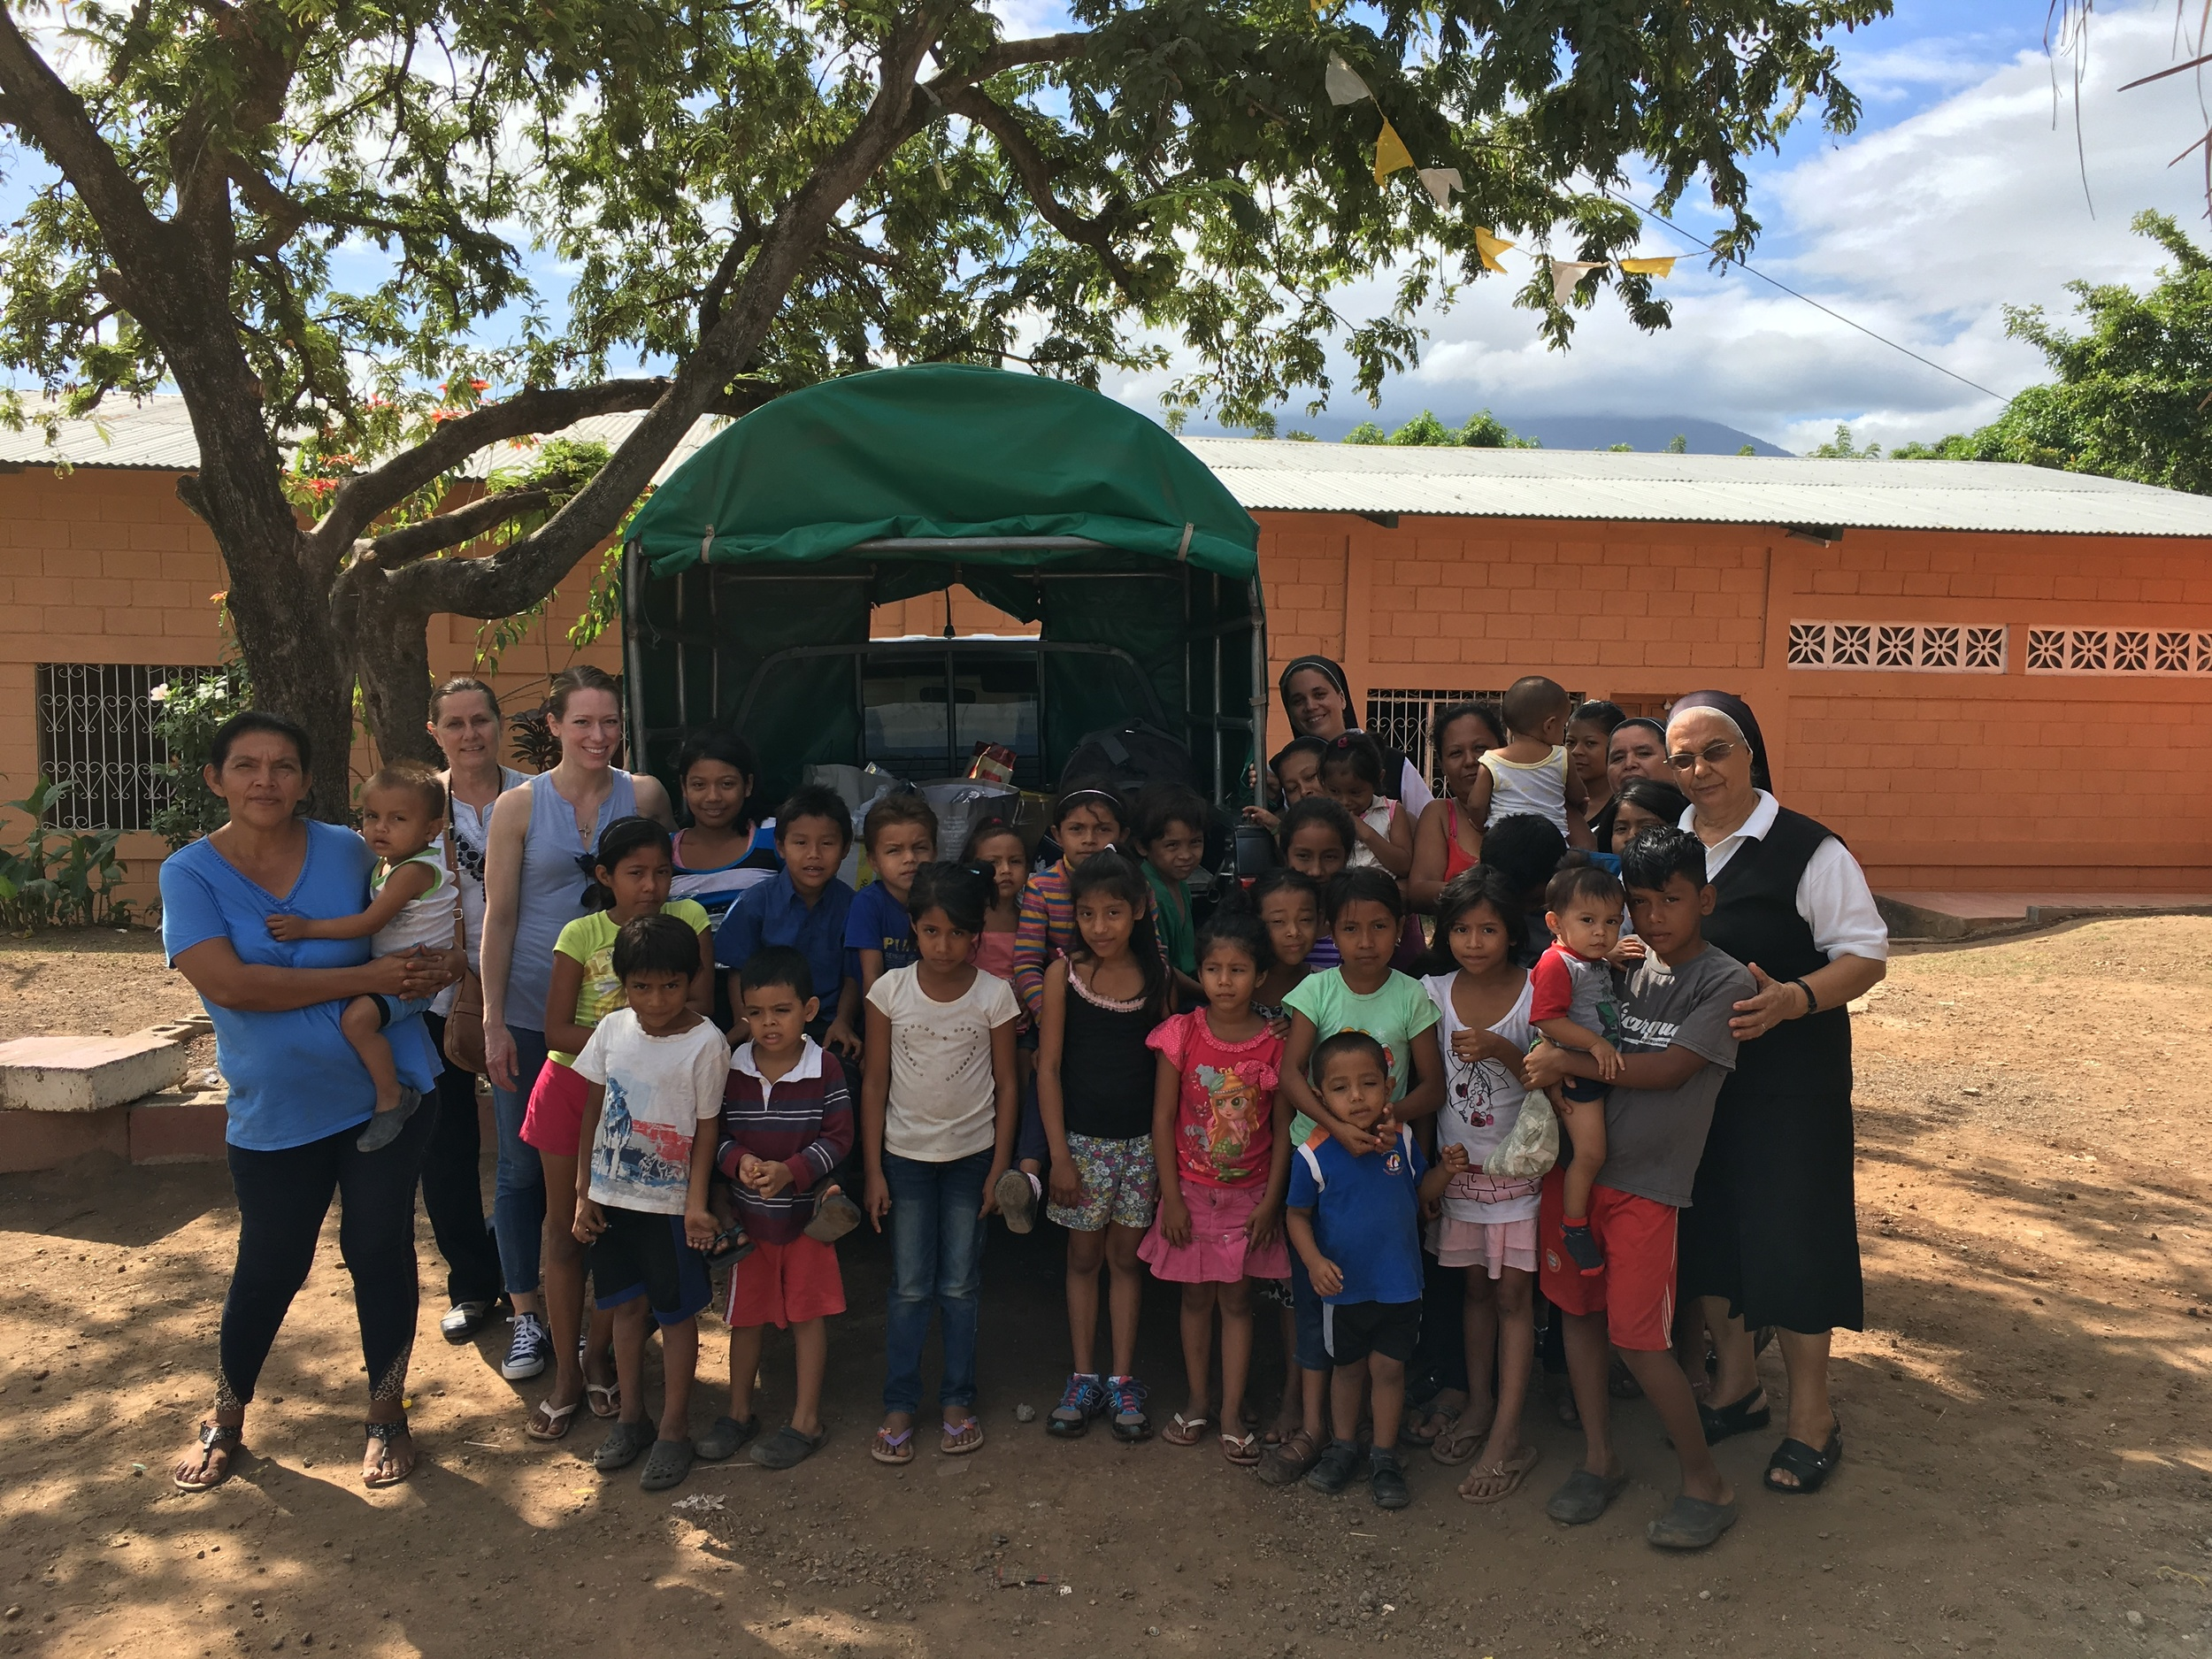 The Gonzalezs with some of their patients and staff providing dental care in Nicaragua